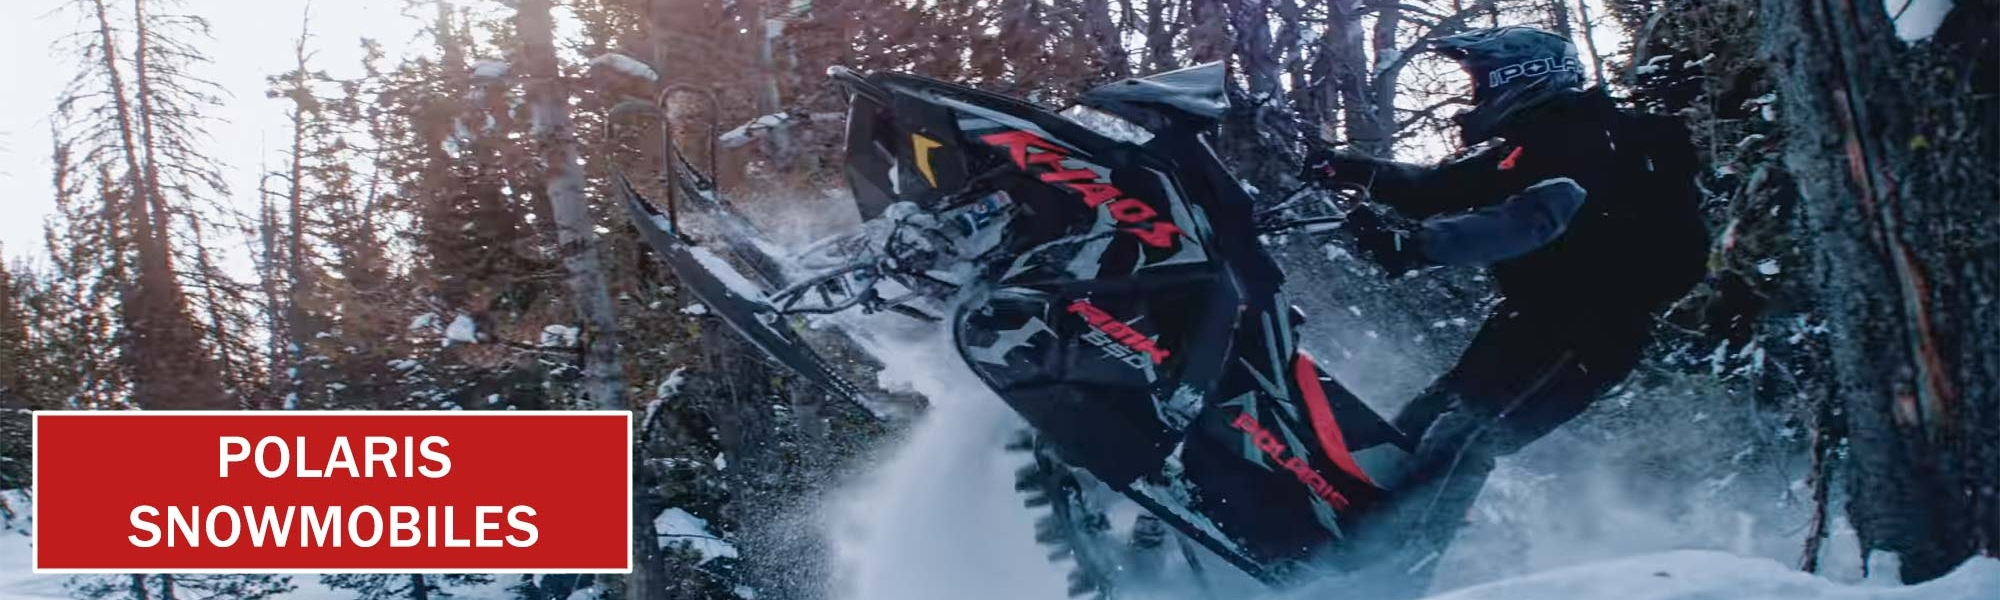 polaris-snowmobile-2020